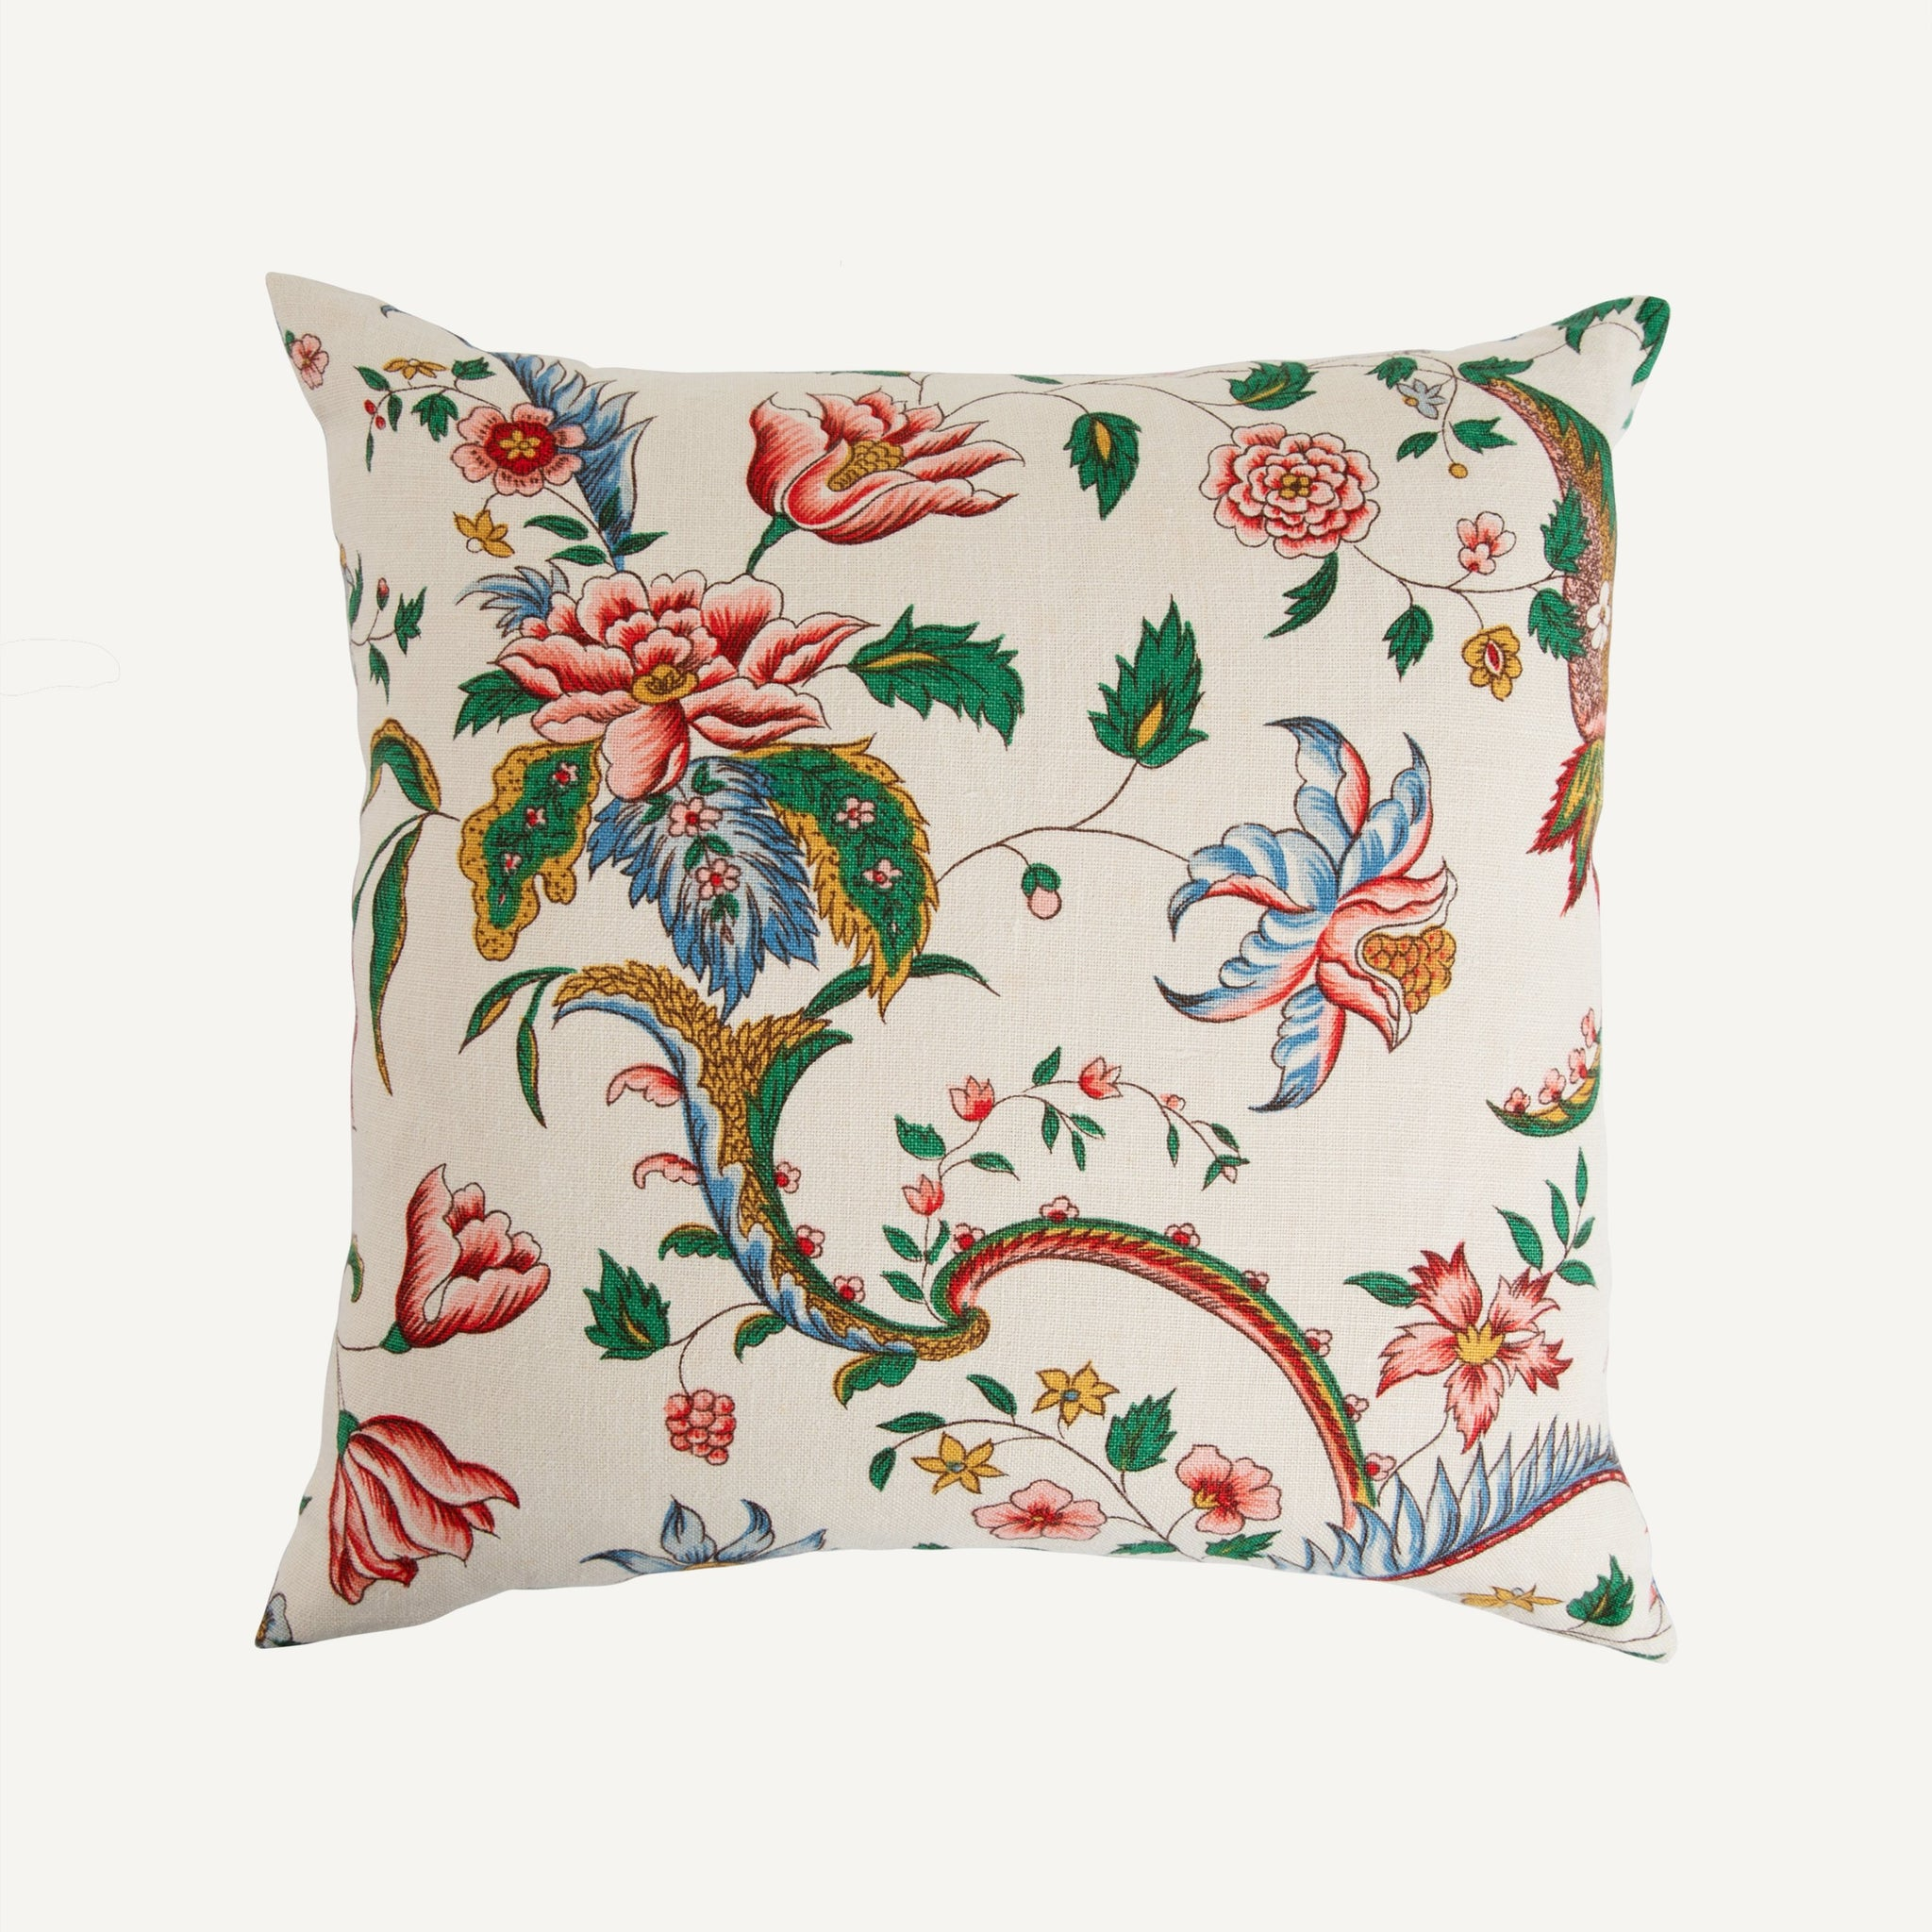 KATHARINE POLE VINTAGE FRENCH FLORAL PILLOW